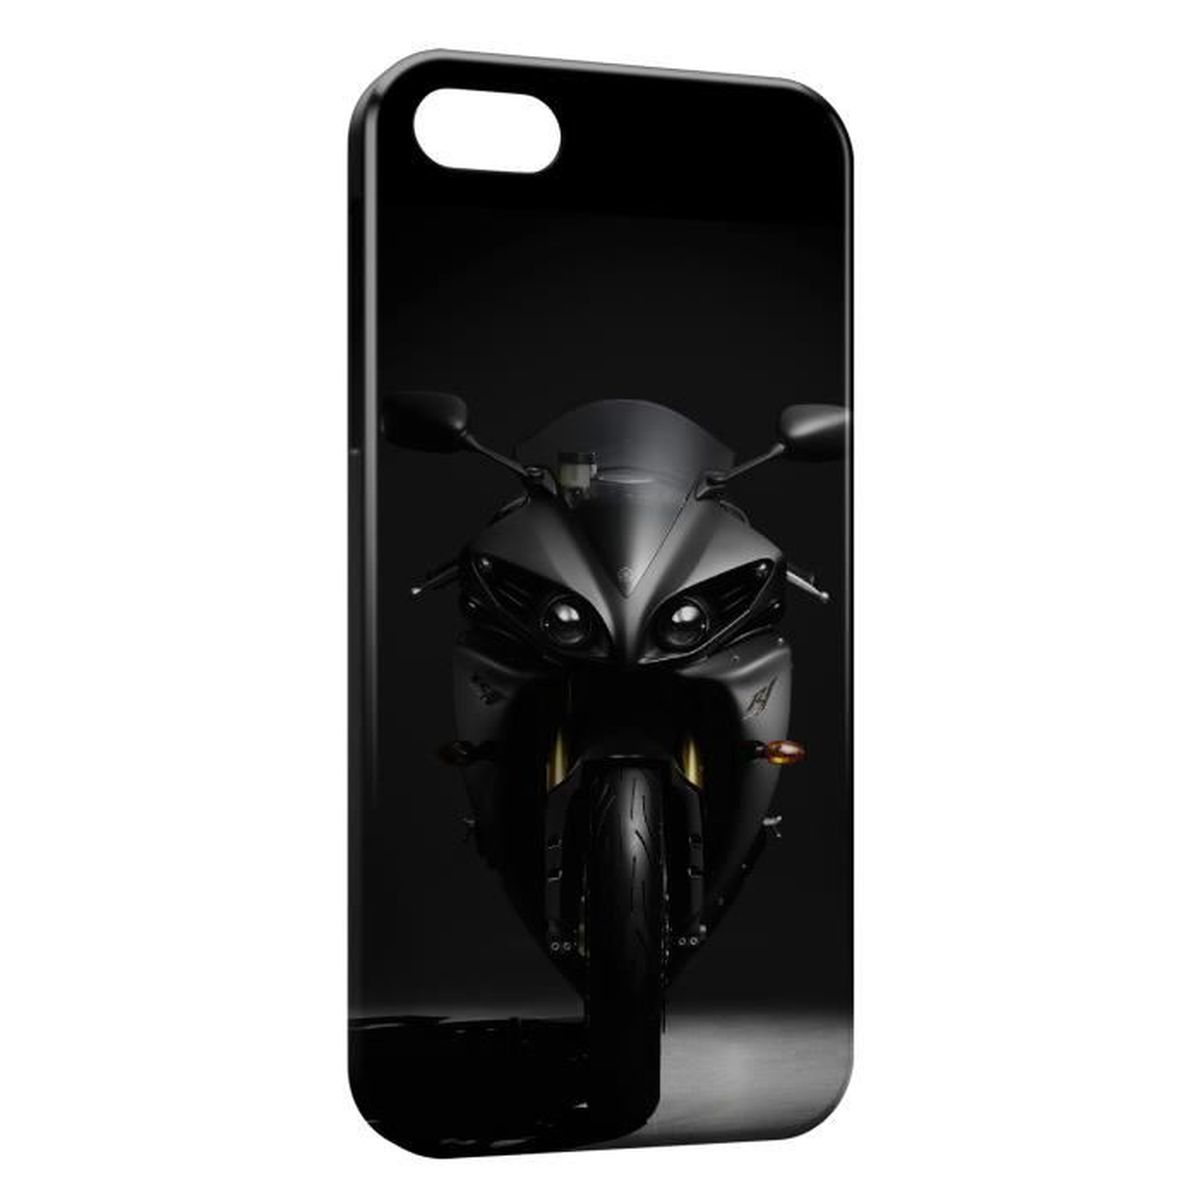 coque iphone 6 moto yamaha